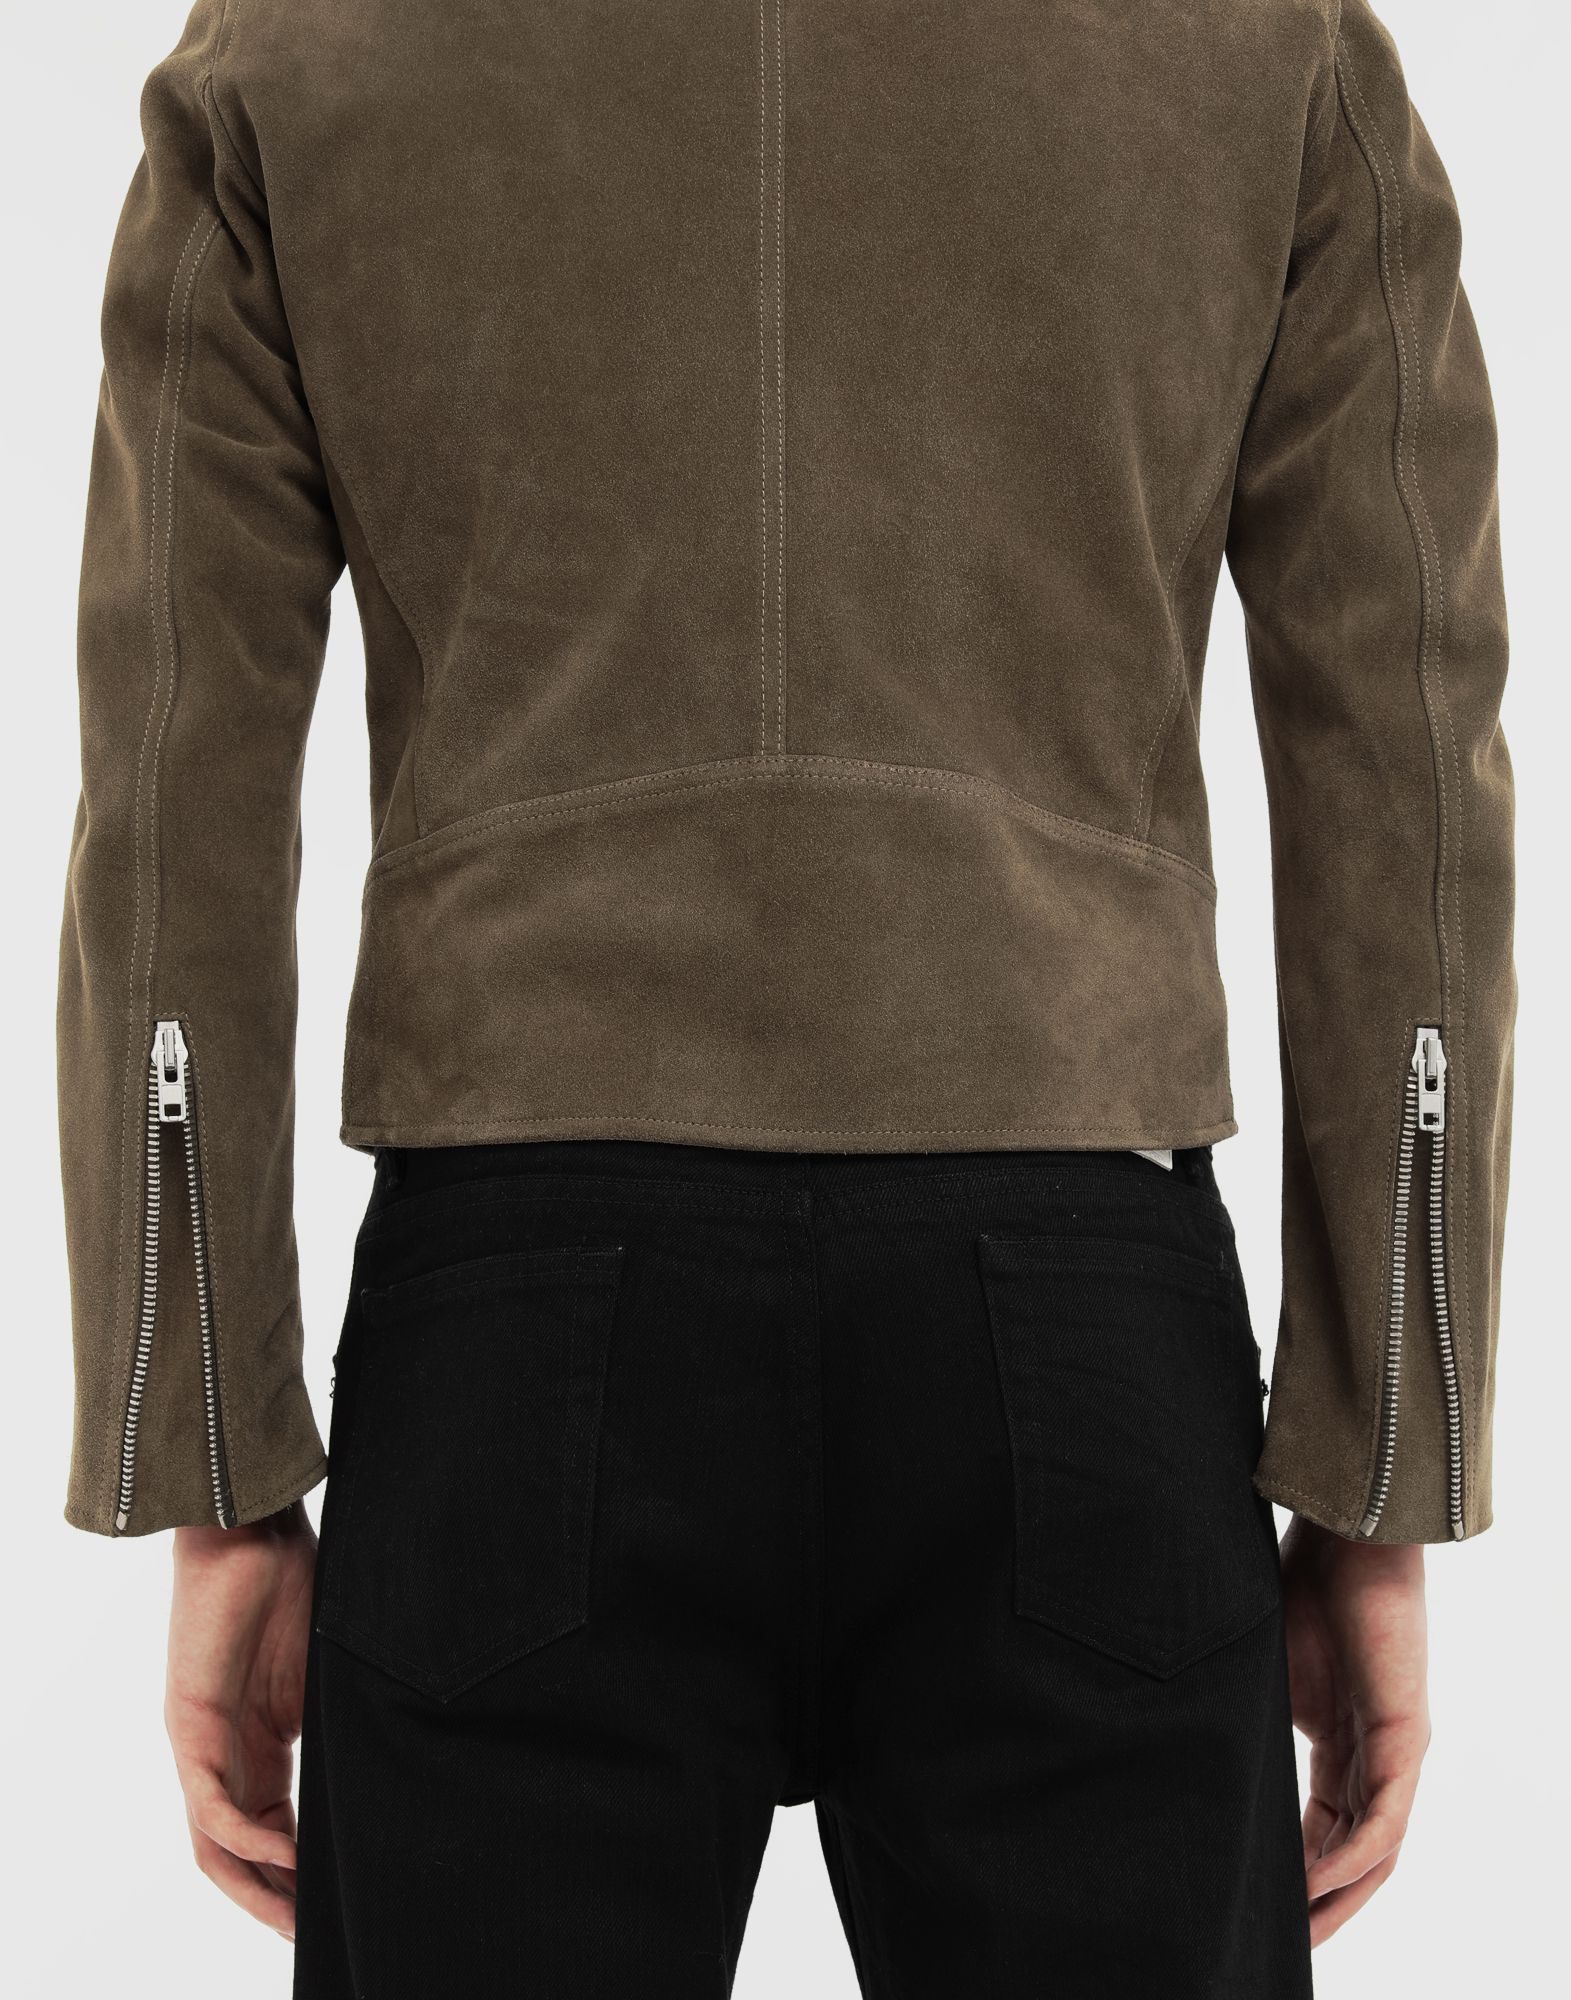 MAISON MARGIELA Leather jacket Leather Jacket Man a